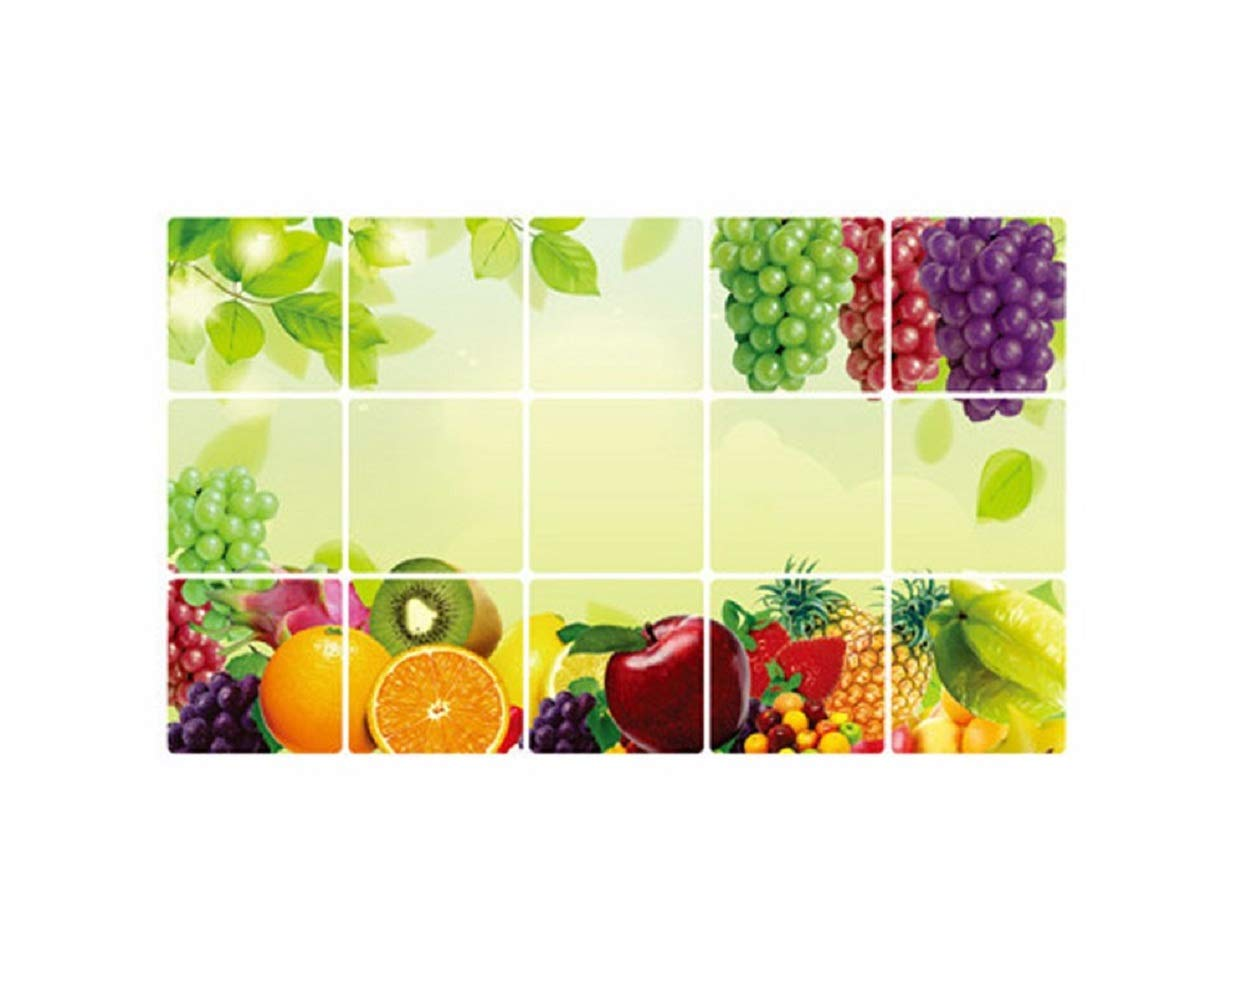 IRENE Home Decal Wall Stickers Cute Kitchen Oilproof Removable Art Decor (Multicolor)